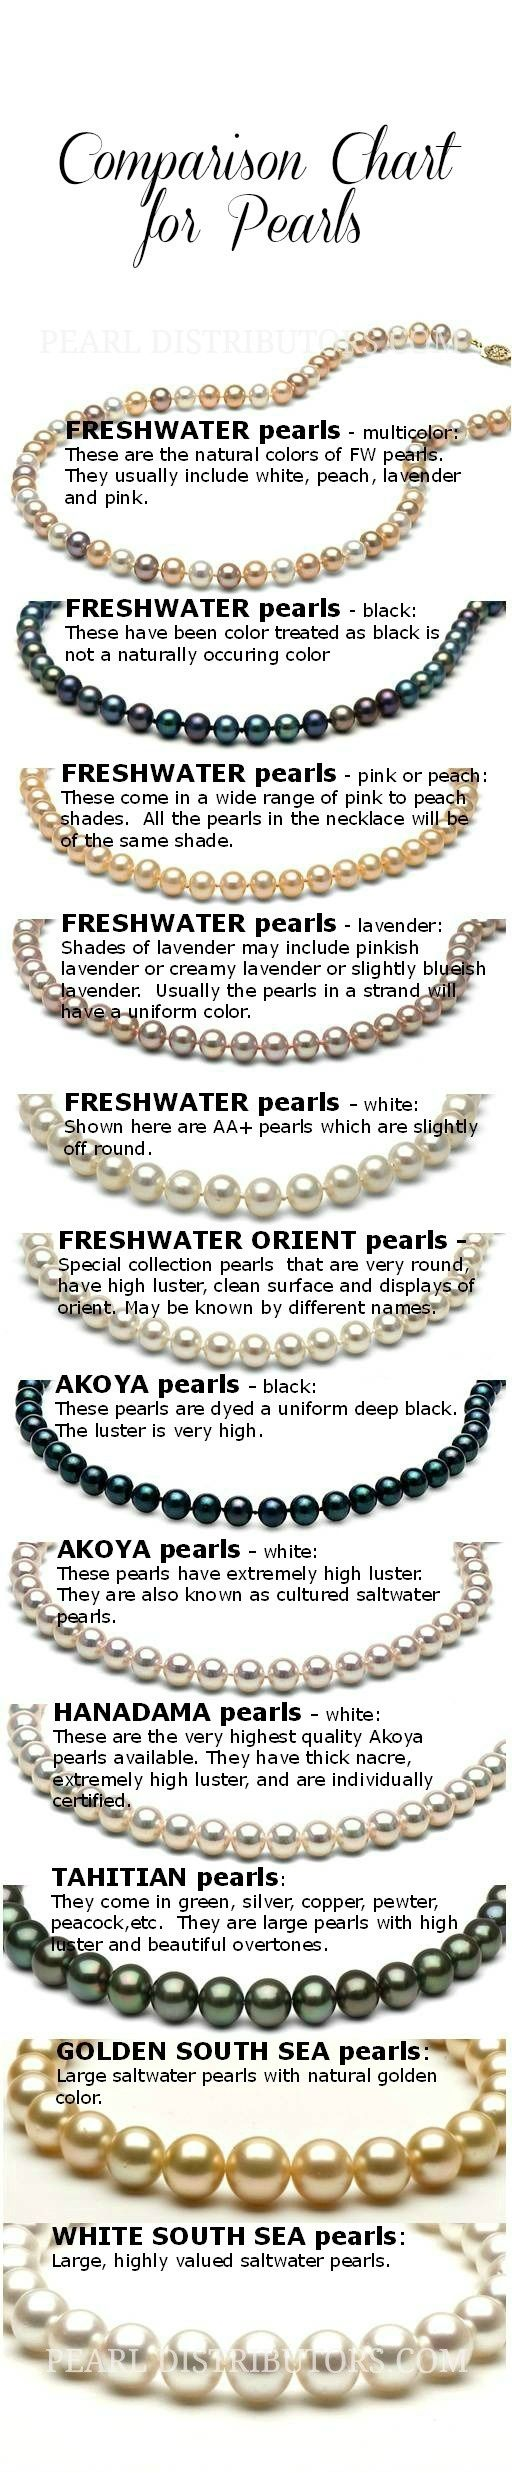 Pearls to drink in